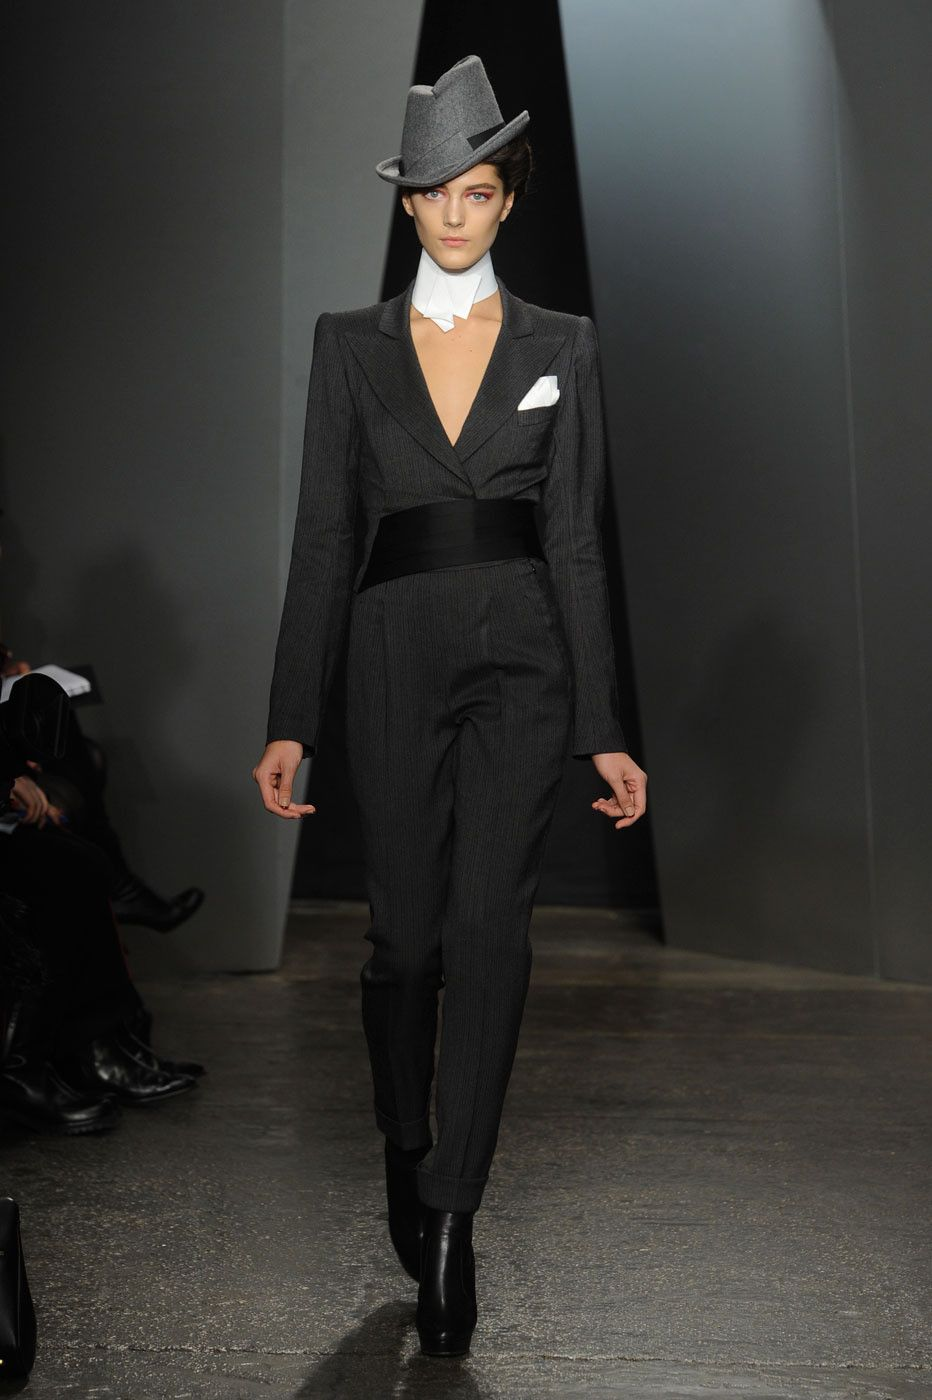 Donna Karan at New York Fashion Week Fall 2012 - StyleBistro